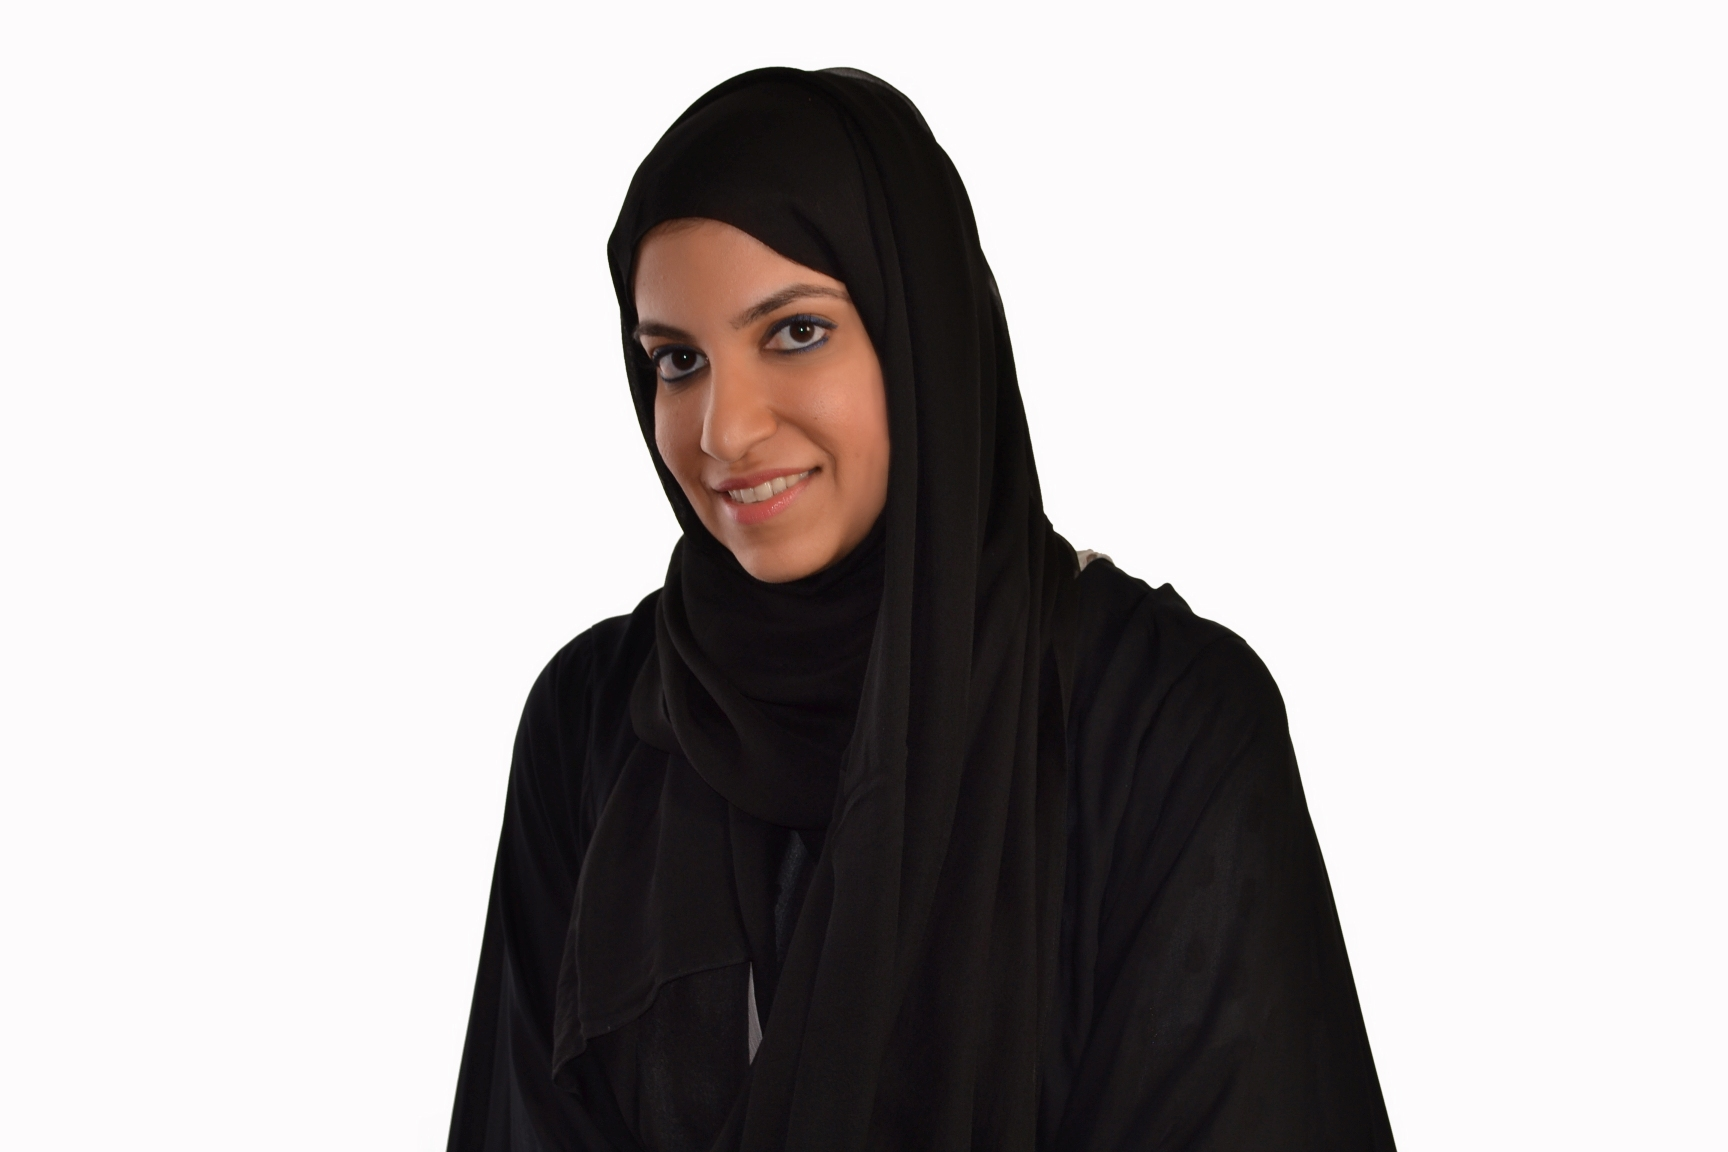 Emirates Islamic appoints Hessa Al Mulla as Head of Human Resources